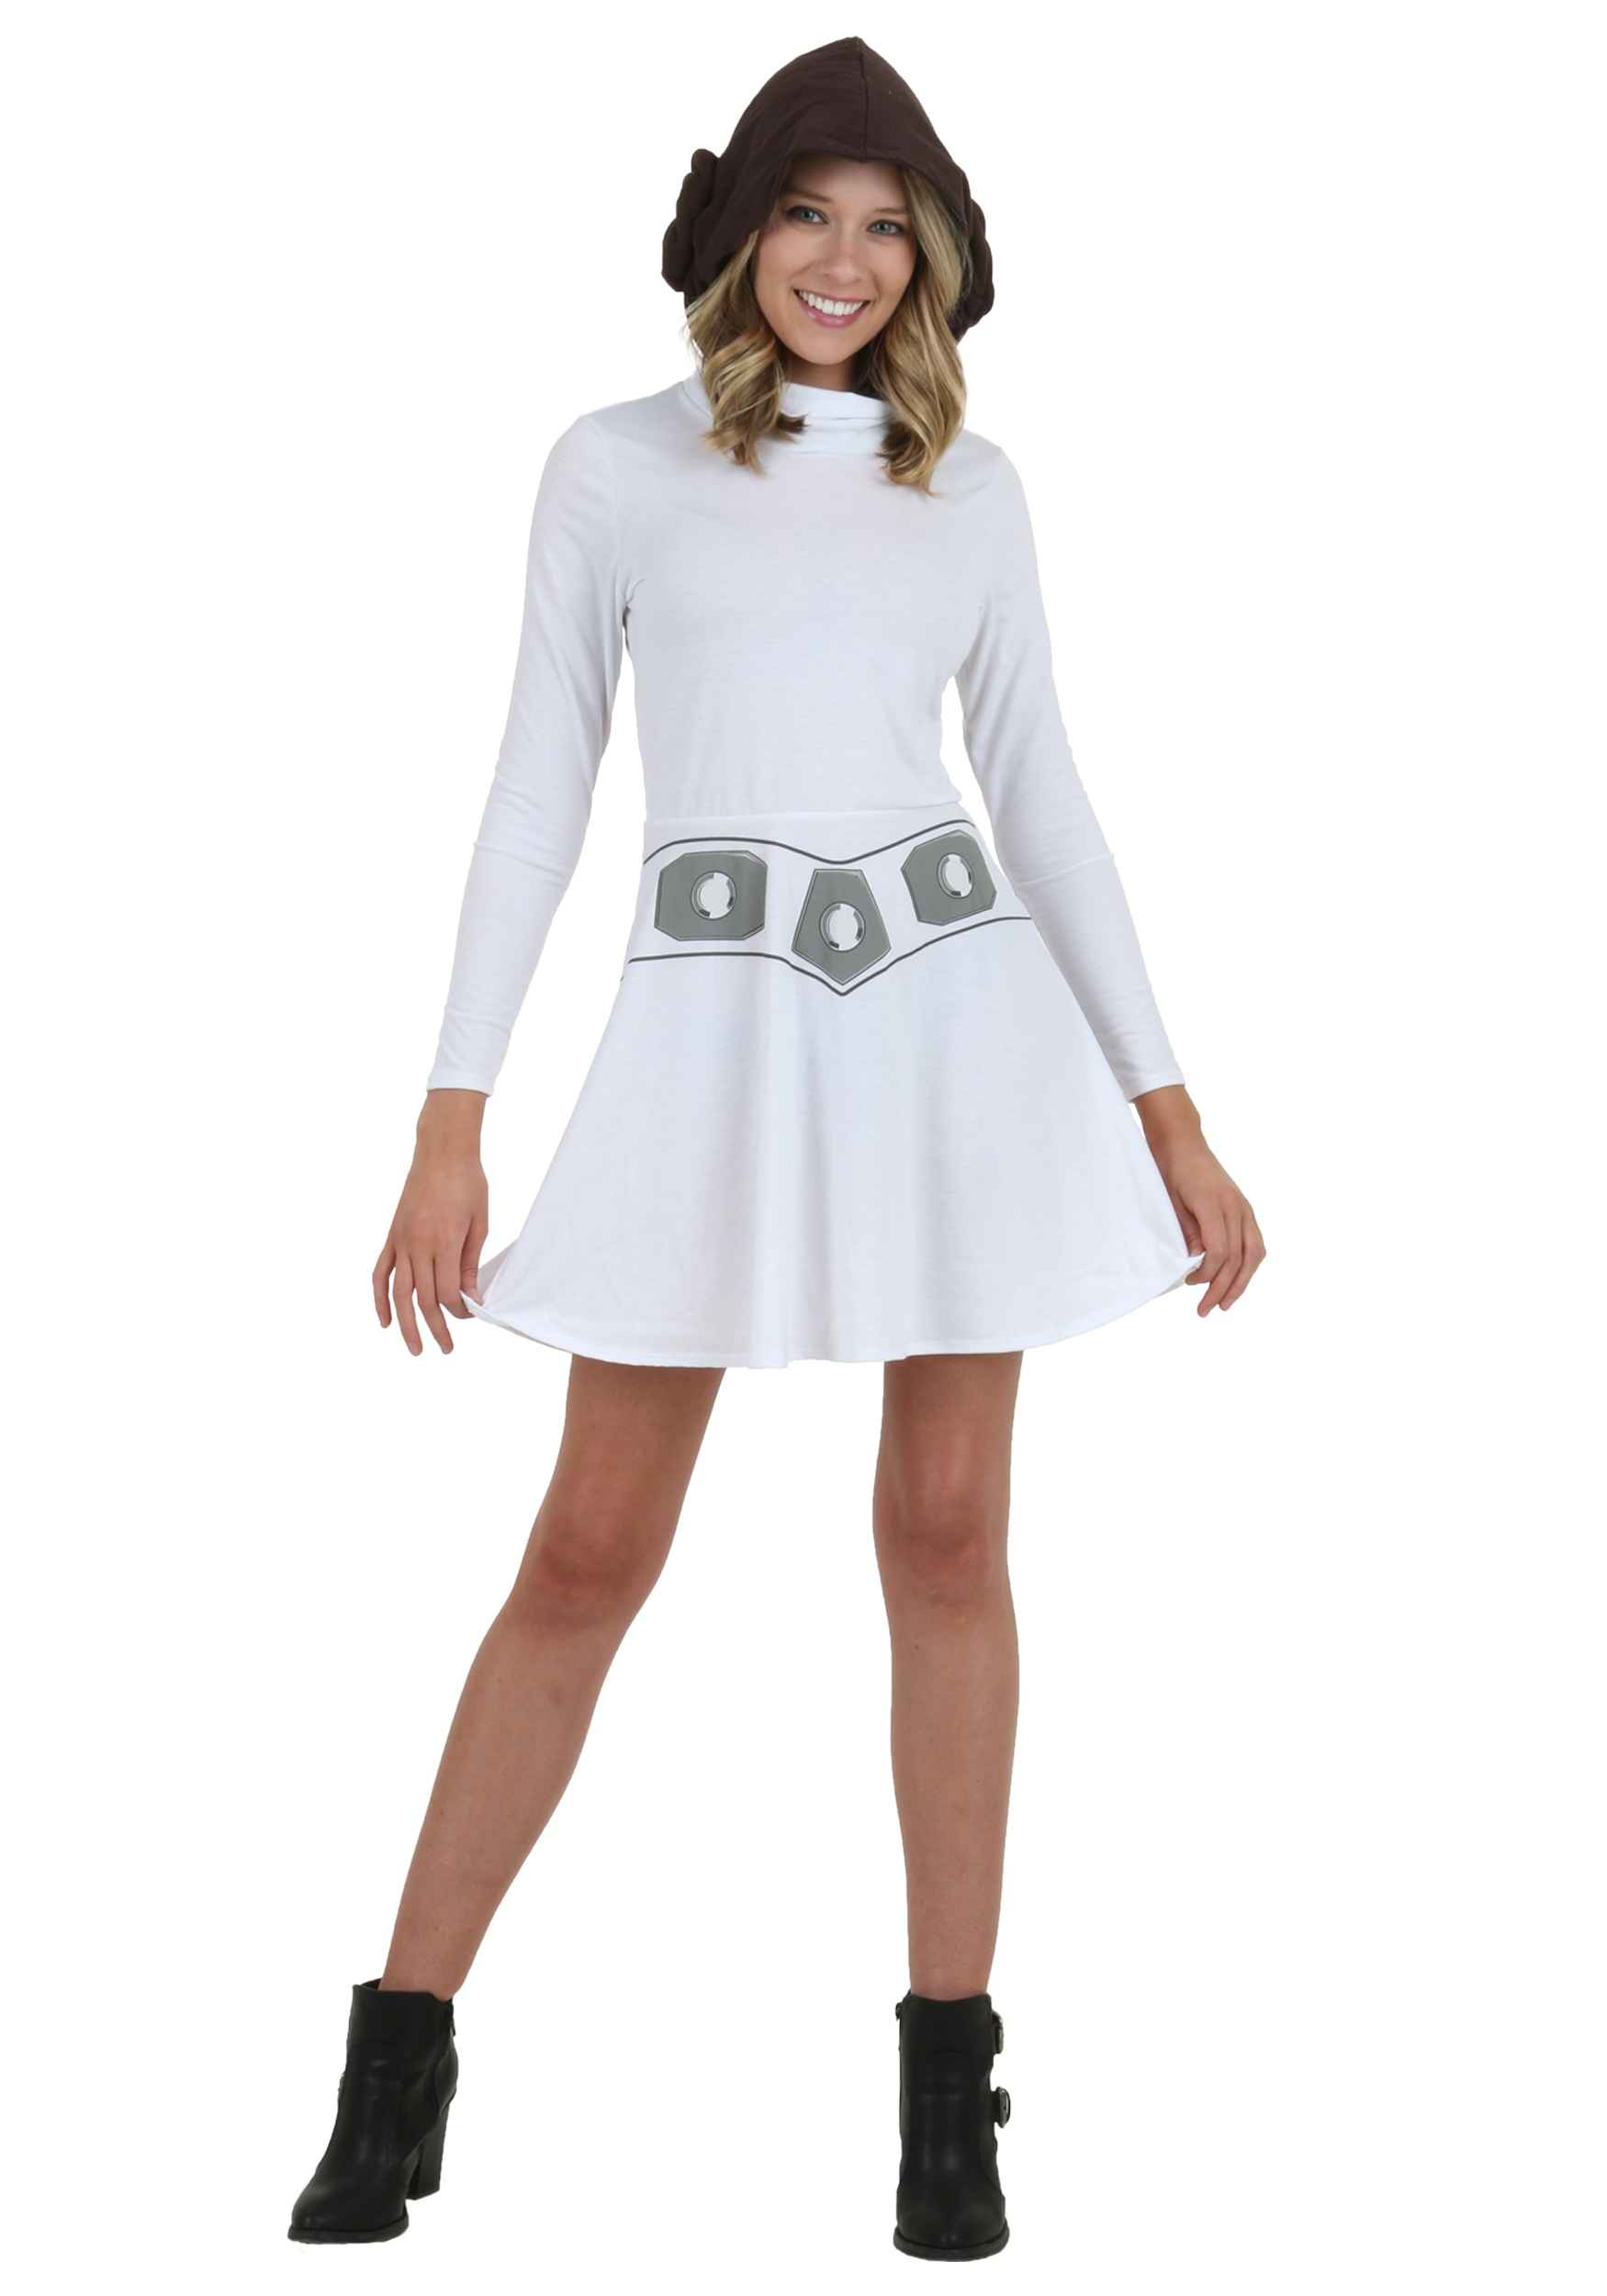 Image of I Am Leia Women's Hooded Skater Costume Dress